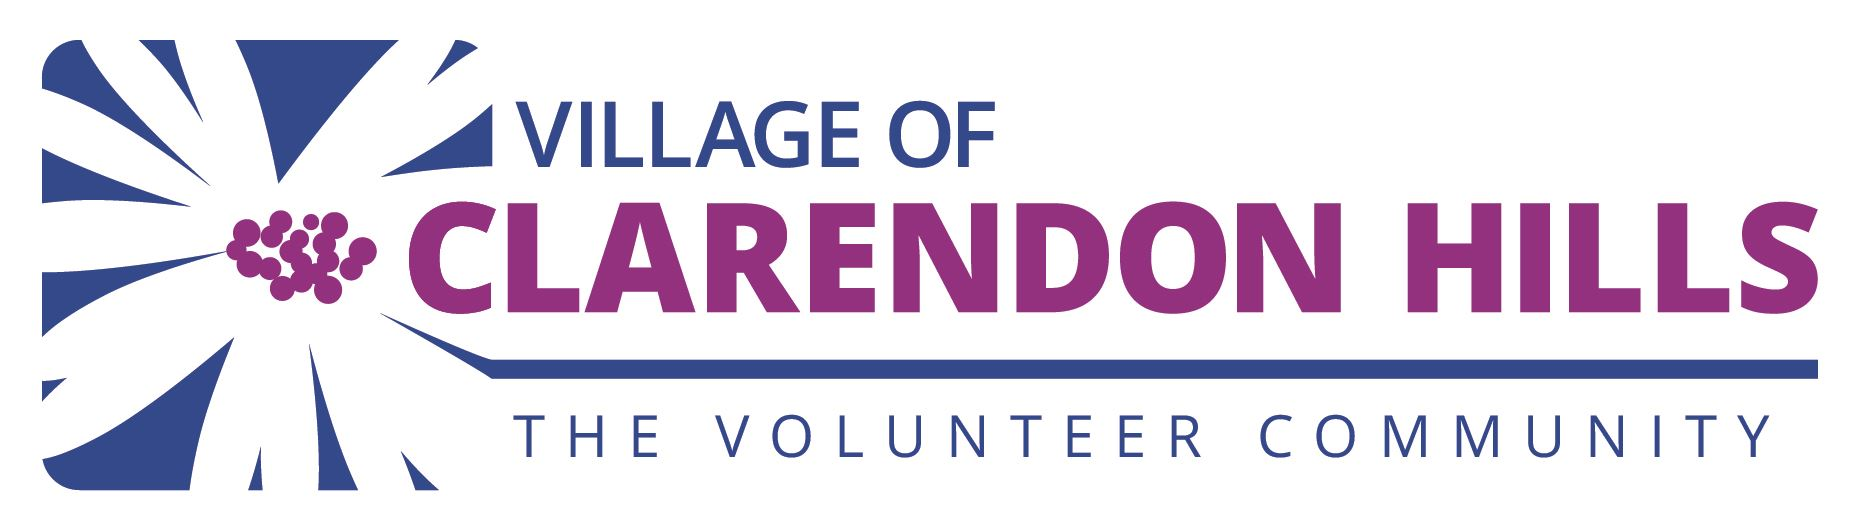 Village of Clarendon Hills - The Volunteer Community Home